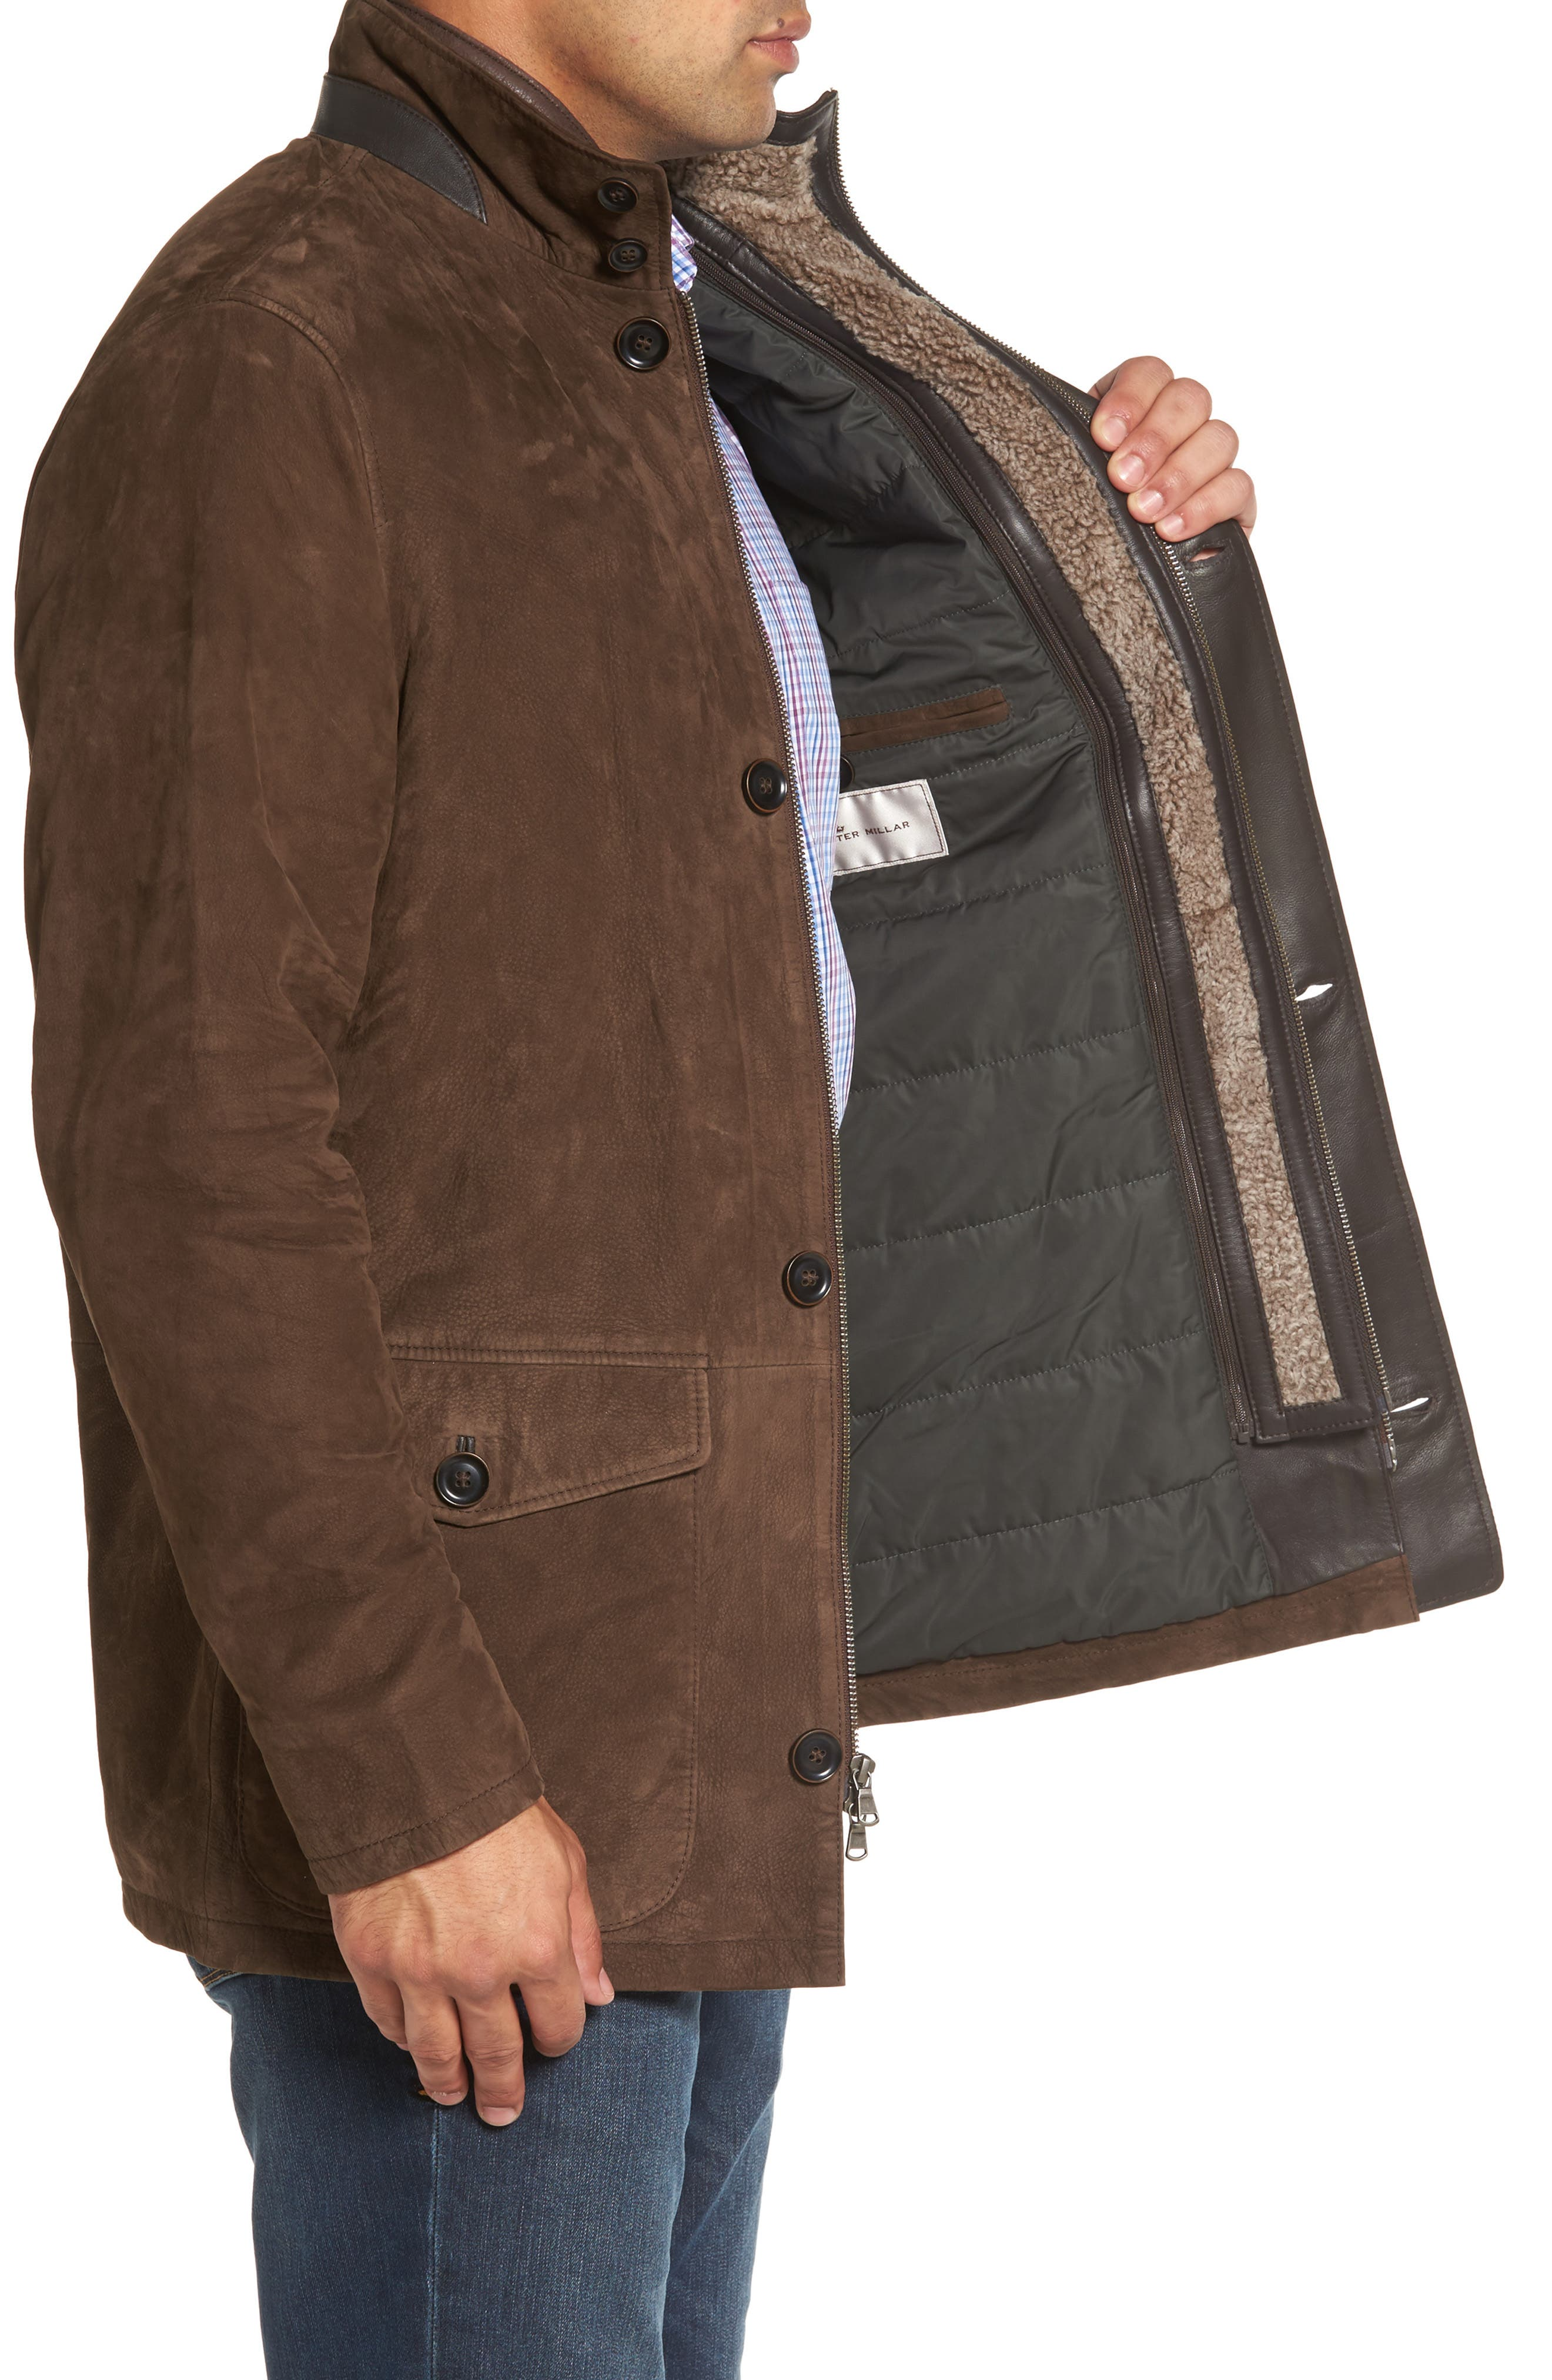 Steamboat Leather Jacket with Genuine Shearling Lined Bib,                             Alternate thumbnail 3, color,                             227